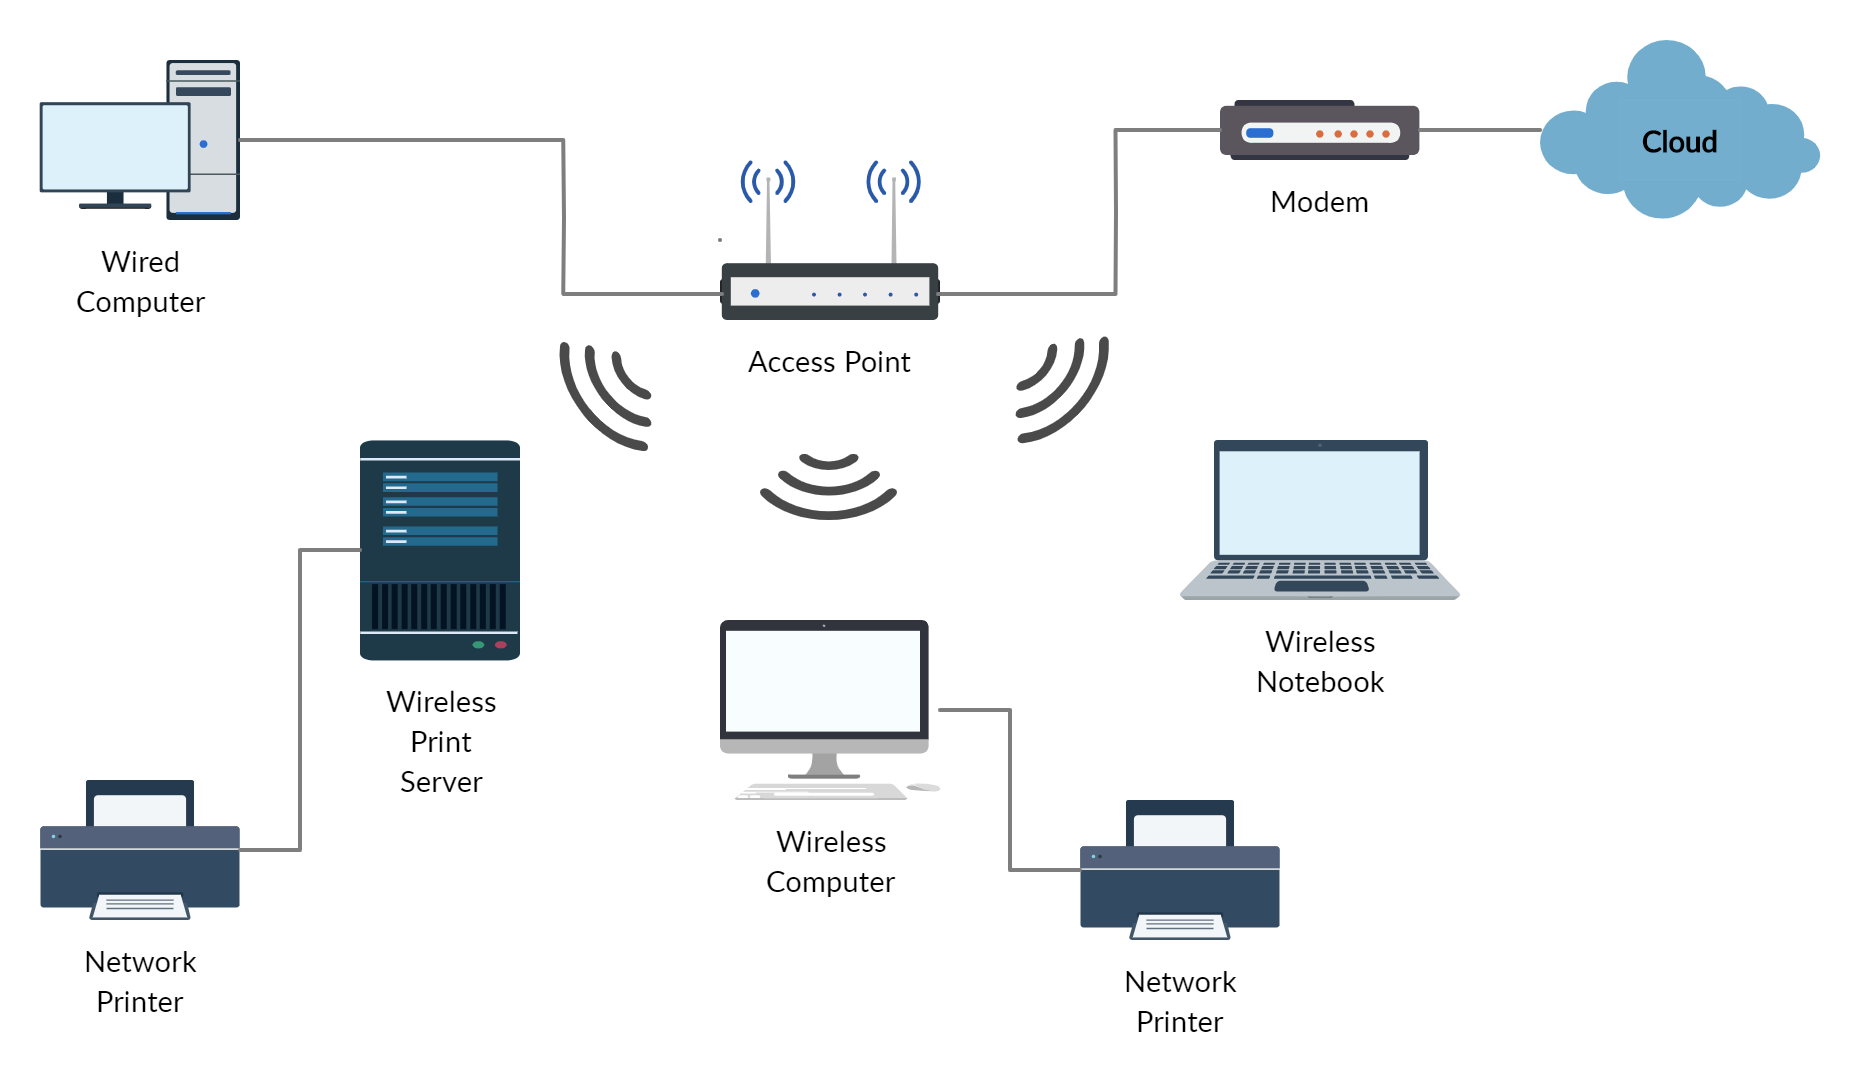 [SCHEMATICS_48YU]  Wireless Network | Wireless networking, Visio network diagram, Diagram | Wireless Network Wiring Diagram |  | Pinterest